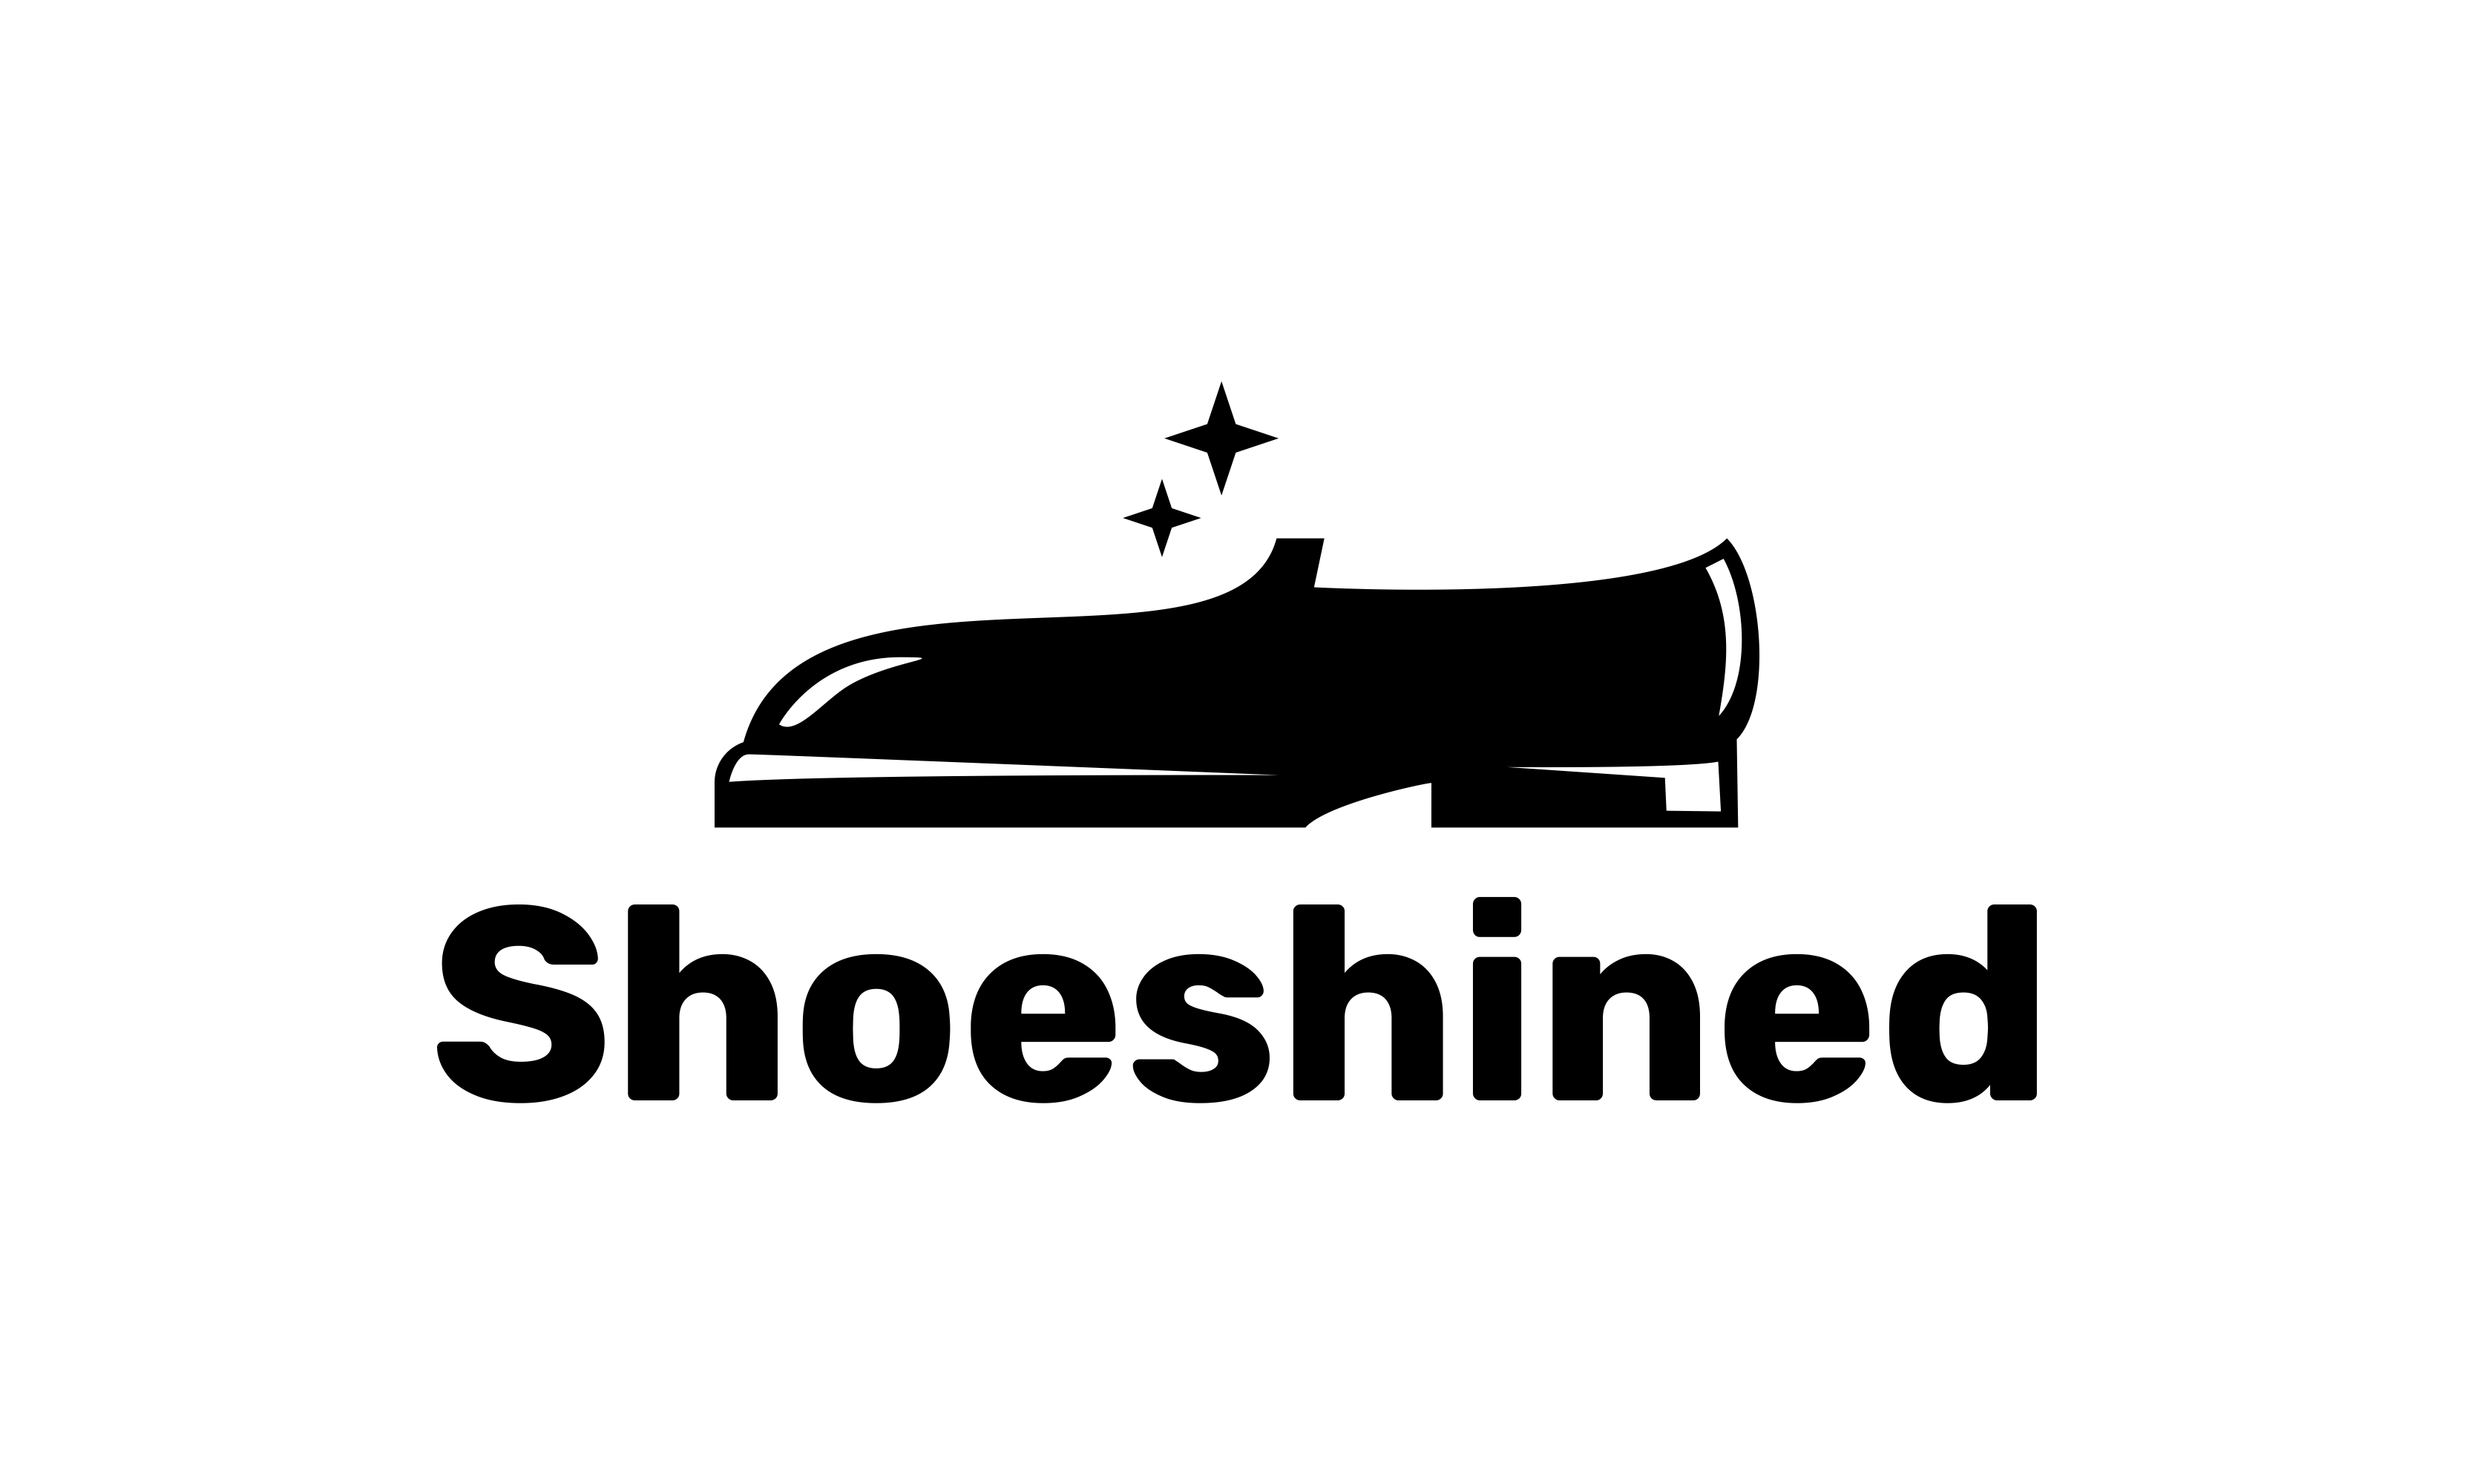 Shoeshined - Retail domain name for sale